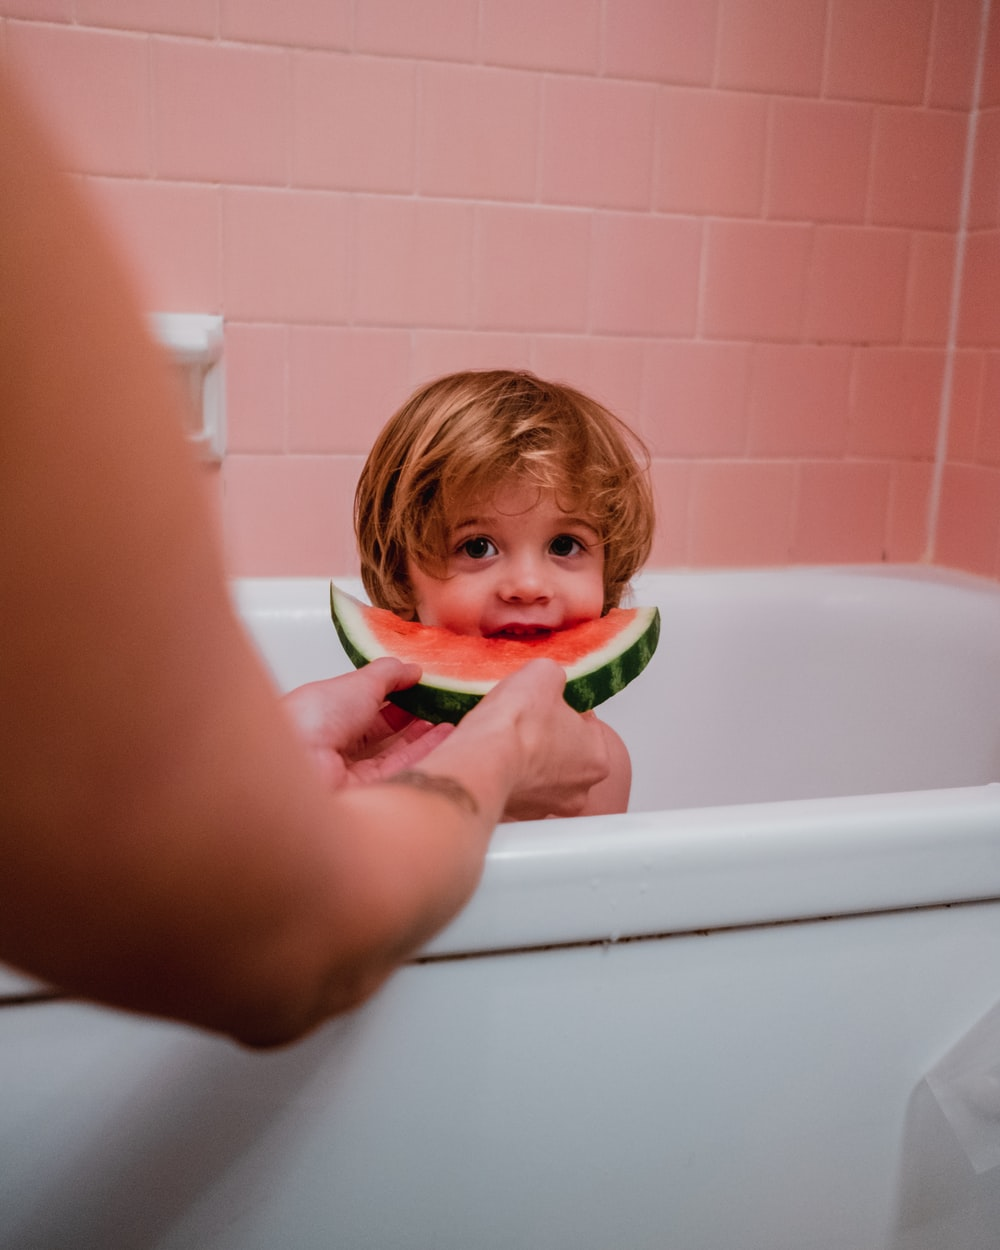 photo of boy in bathtub eating watermelon